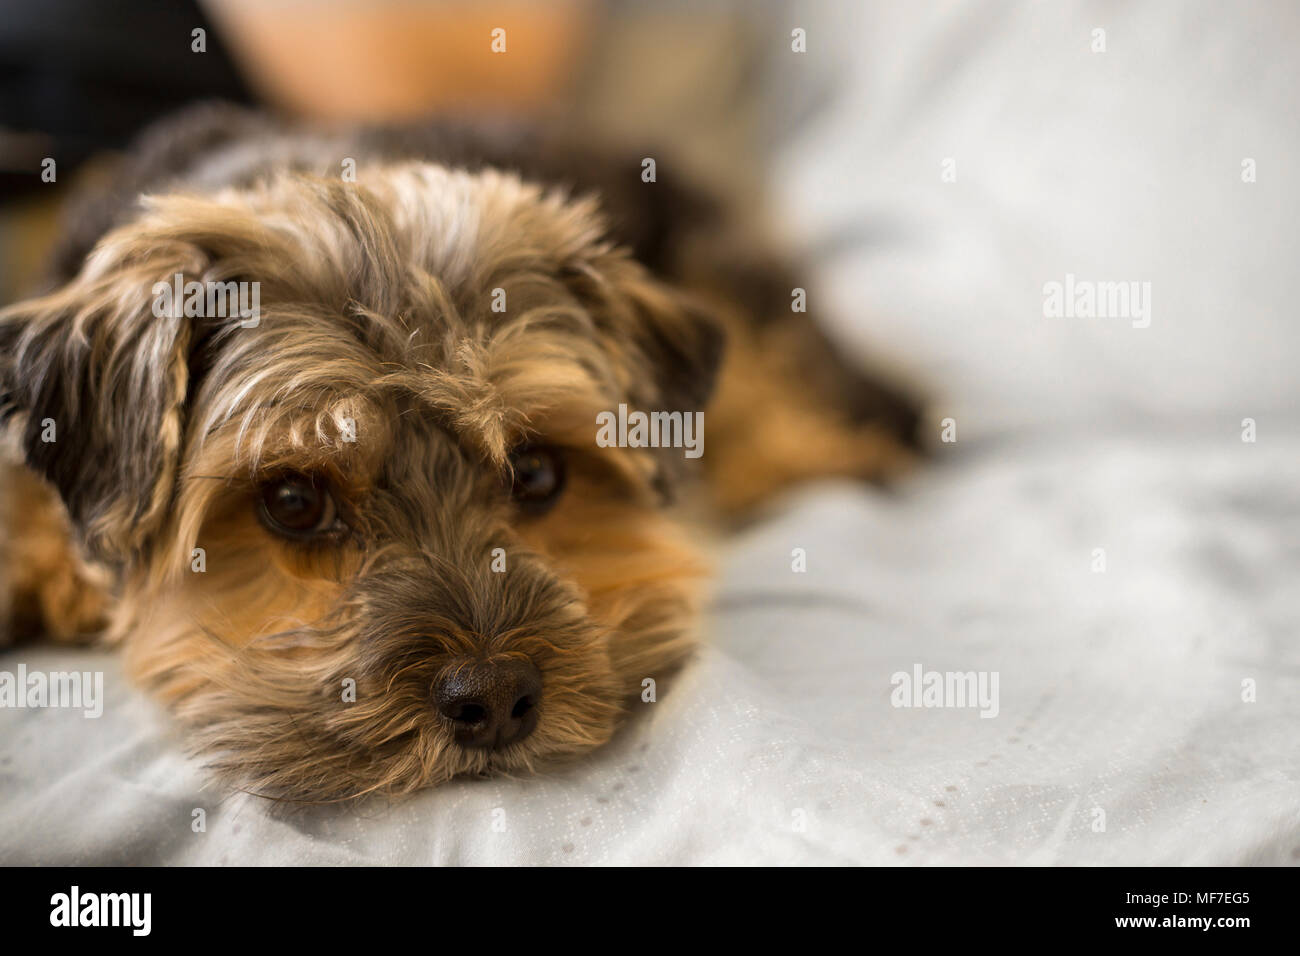 Adorable And Beautiful Images Of Cute Dogs Stock Photo Alamy